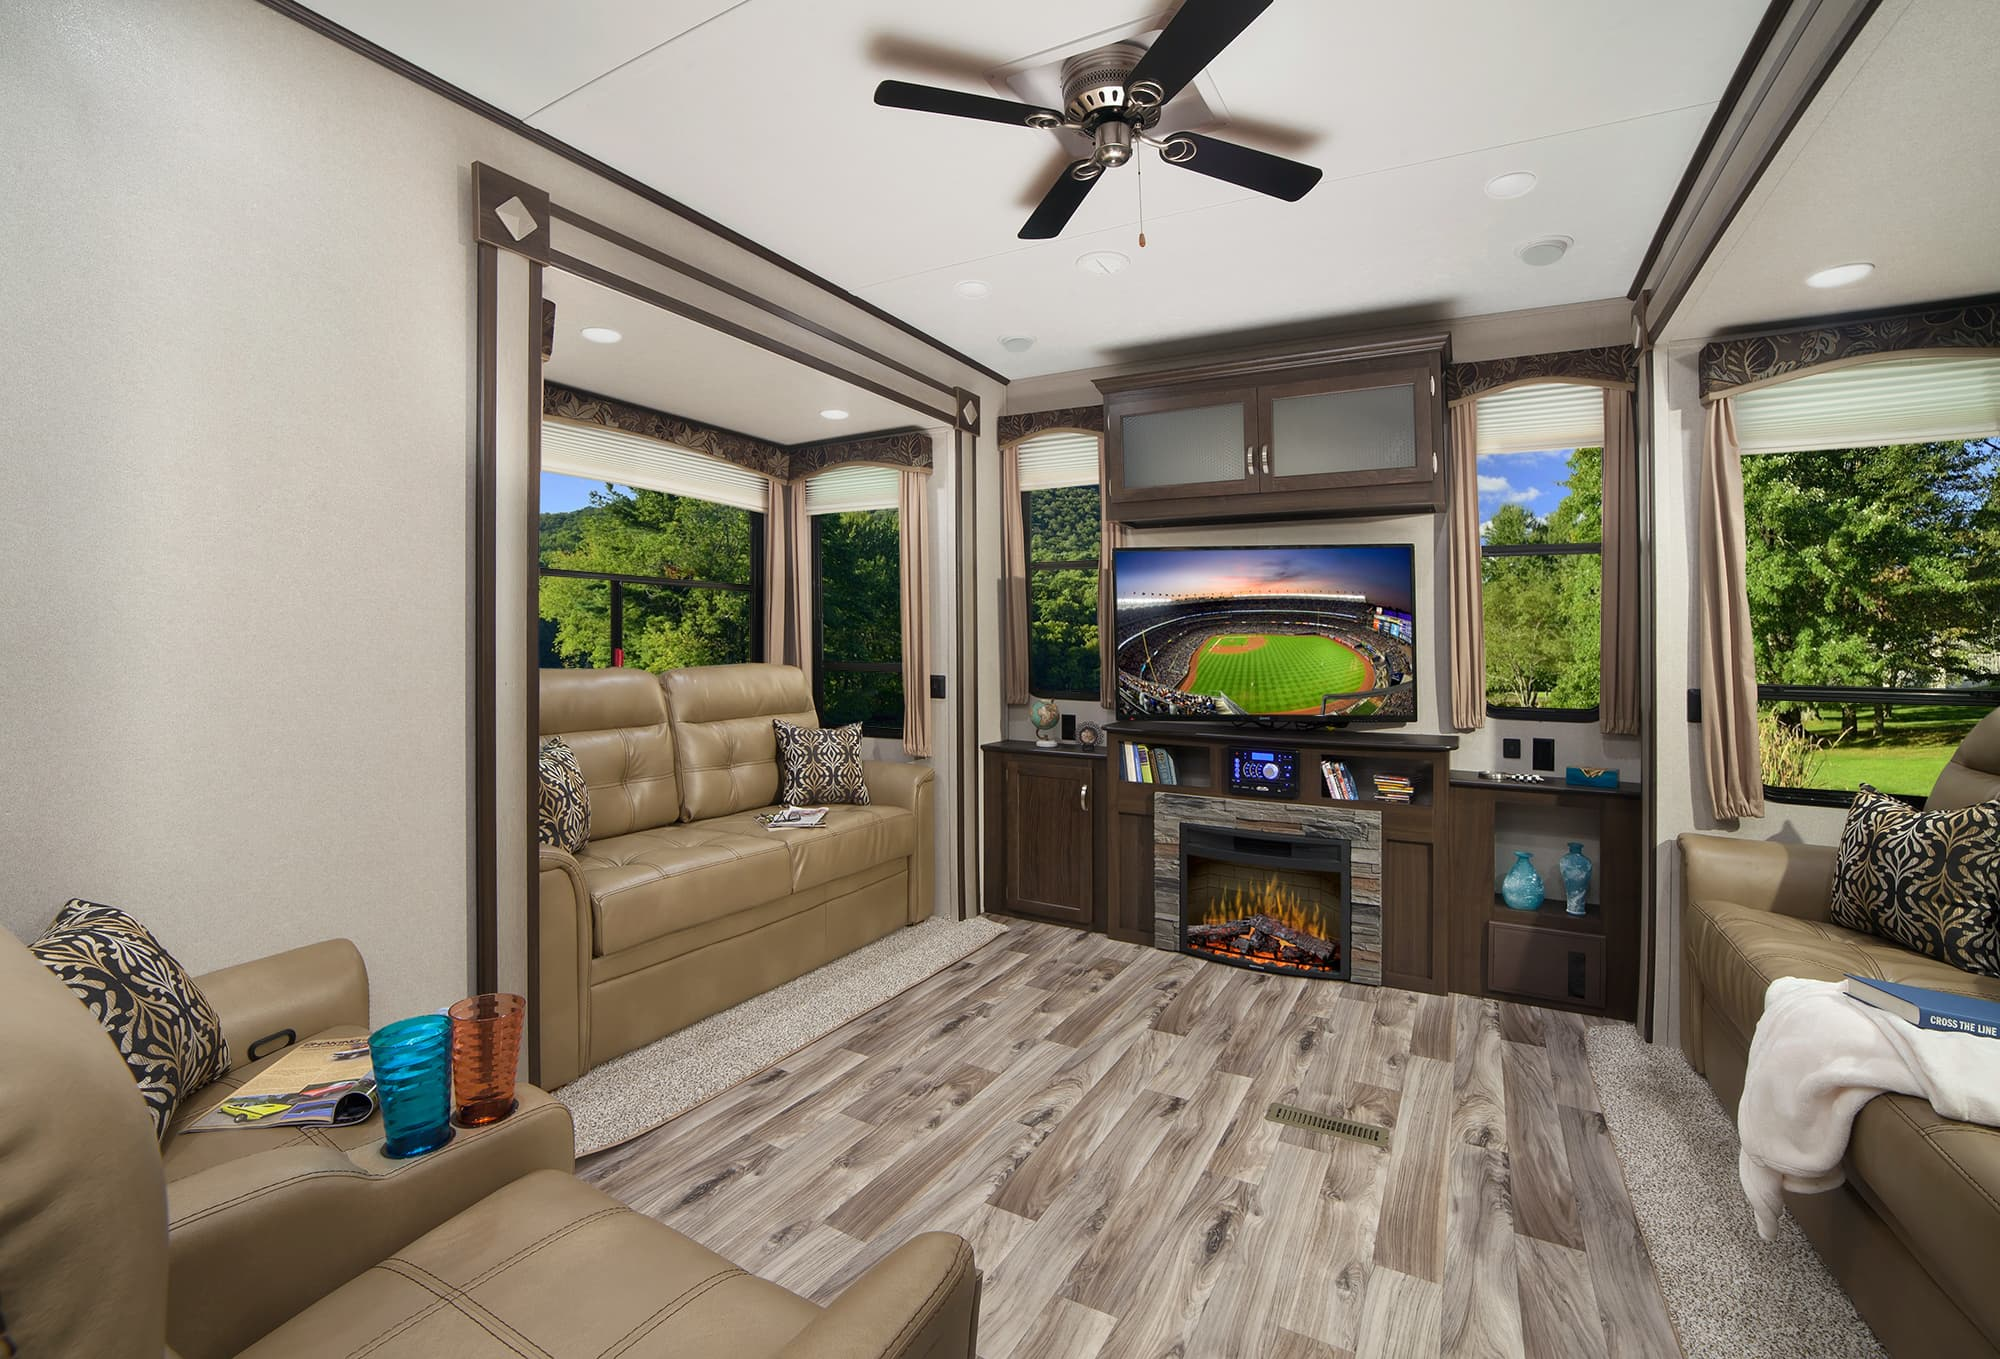 interior of a destination trailer with couches wood floor fireplace and tv